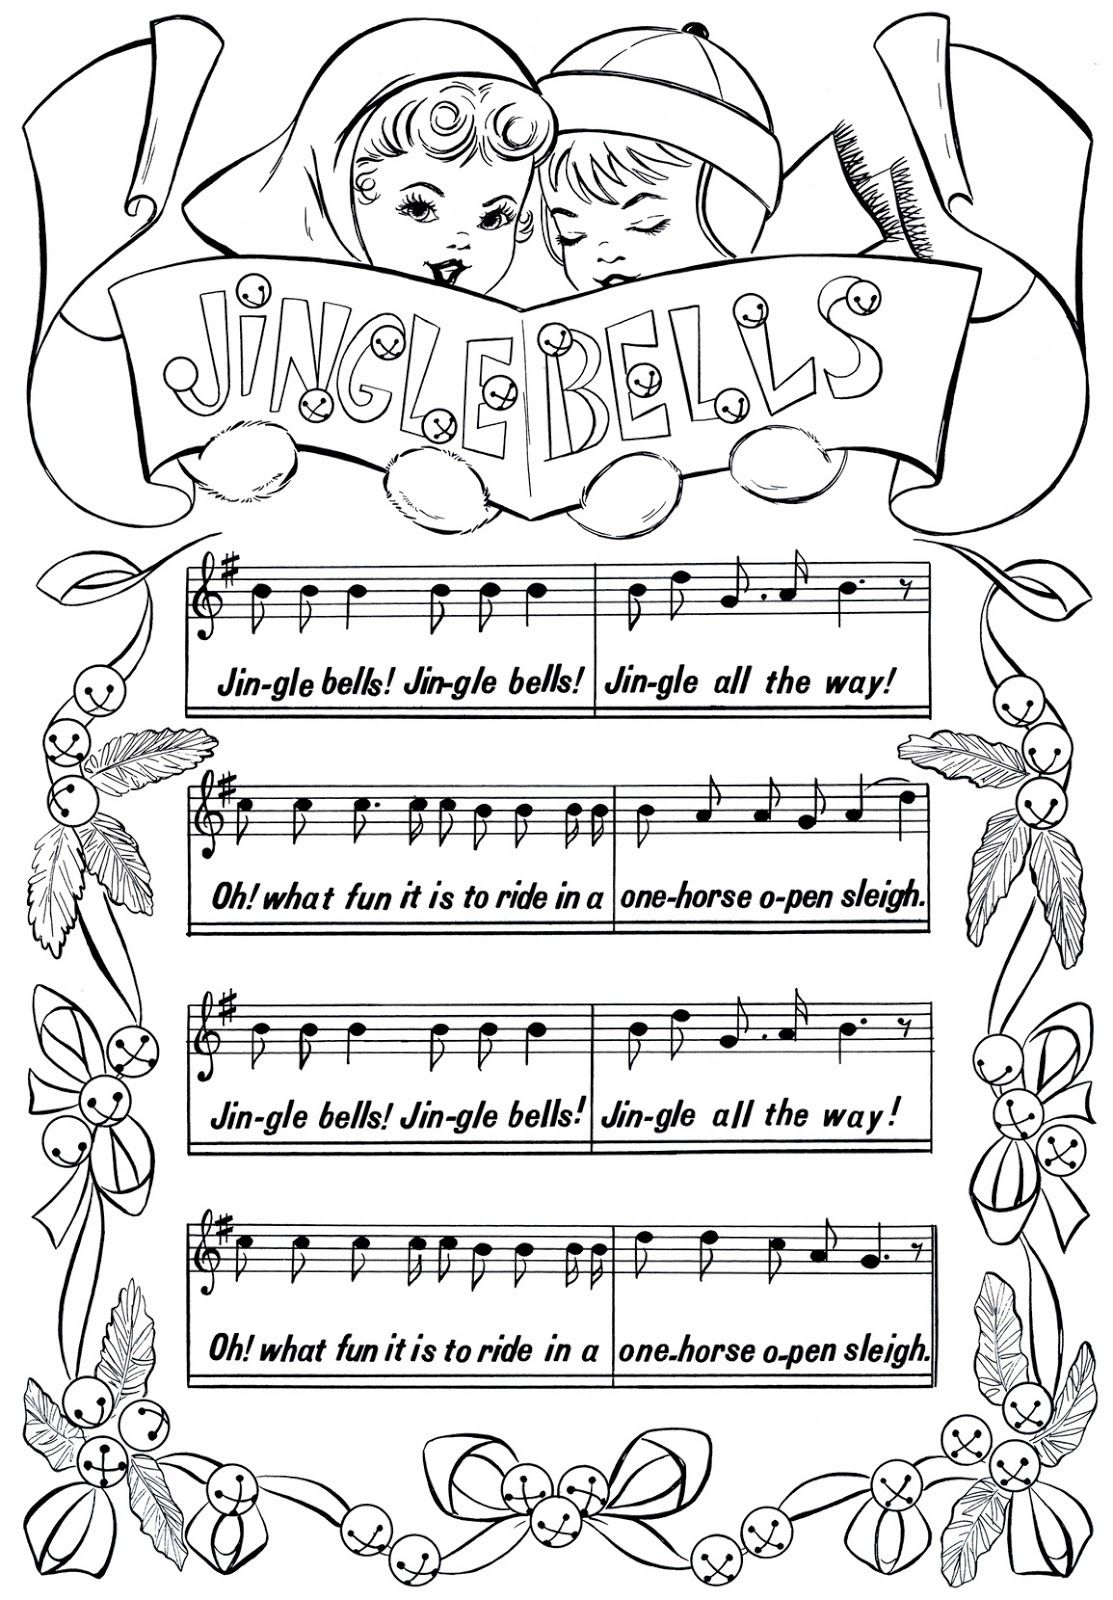 Free Printable Jingle Bells Sheet Music It is my opinion this ...